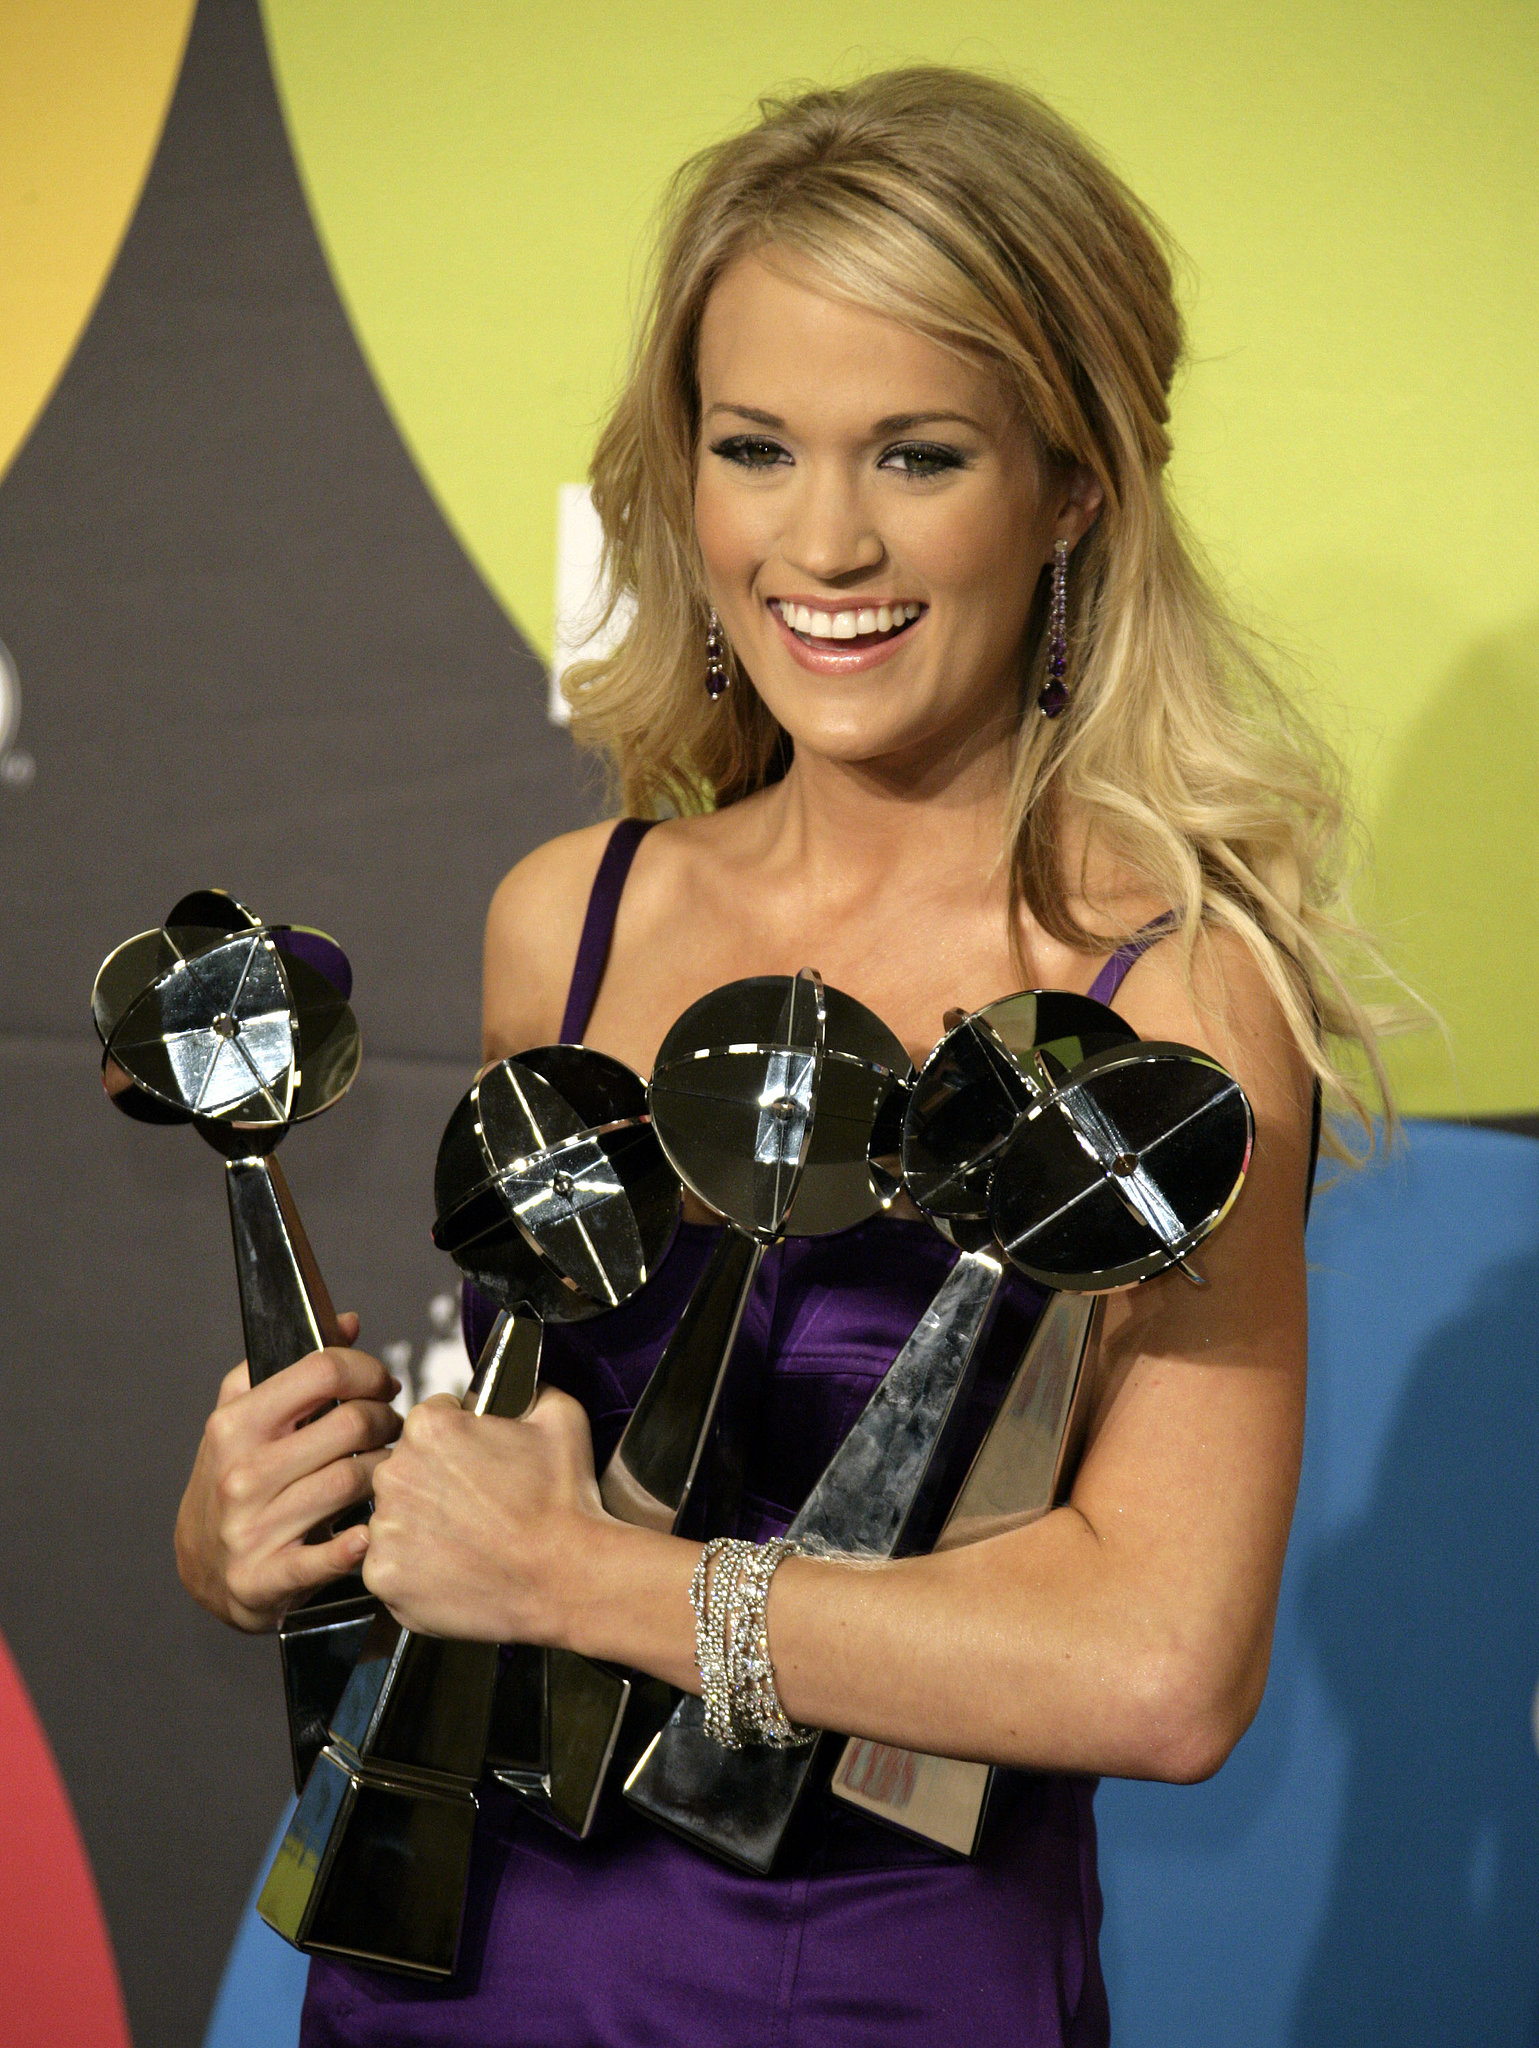 Carrie Underwood balanced multiple Billboard awards after the December 2006 event.